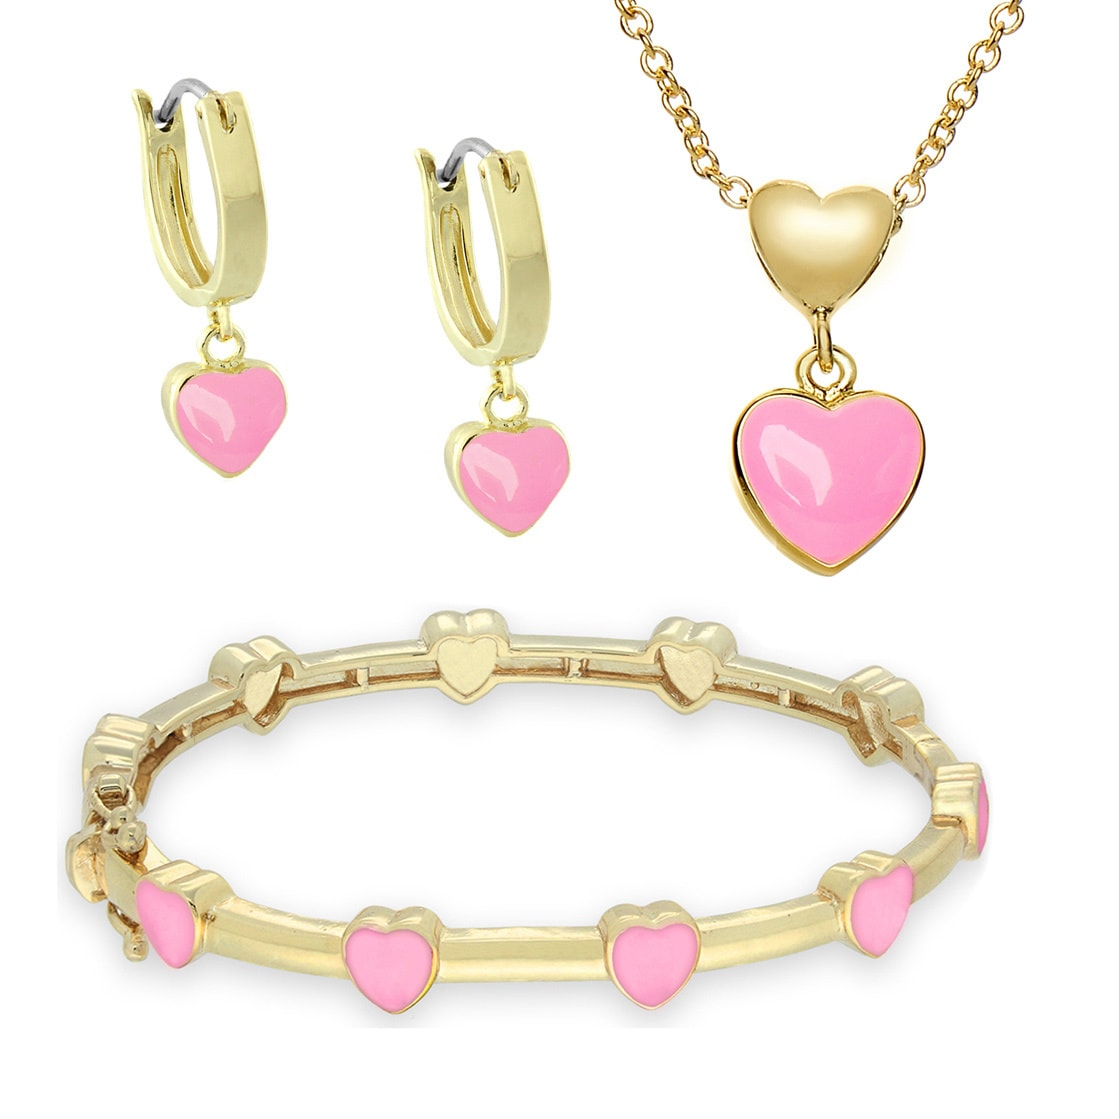 Molly And Emma 18k Gold Overlay Enamel Children S Jewelry Set On Free Shipping Orders Over 45 8330948